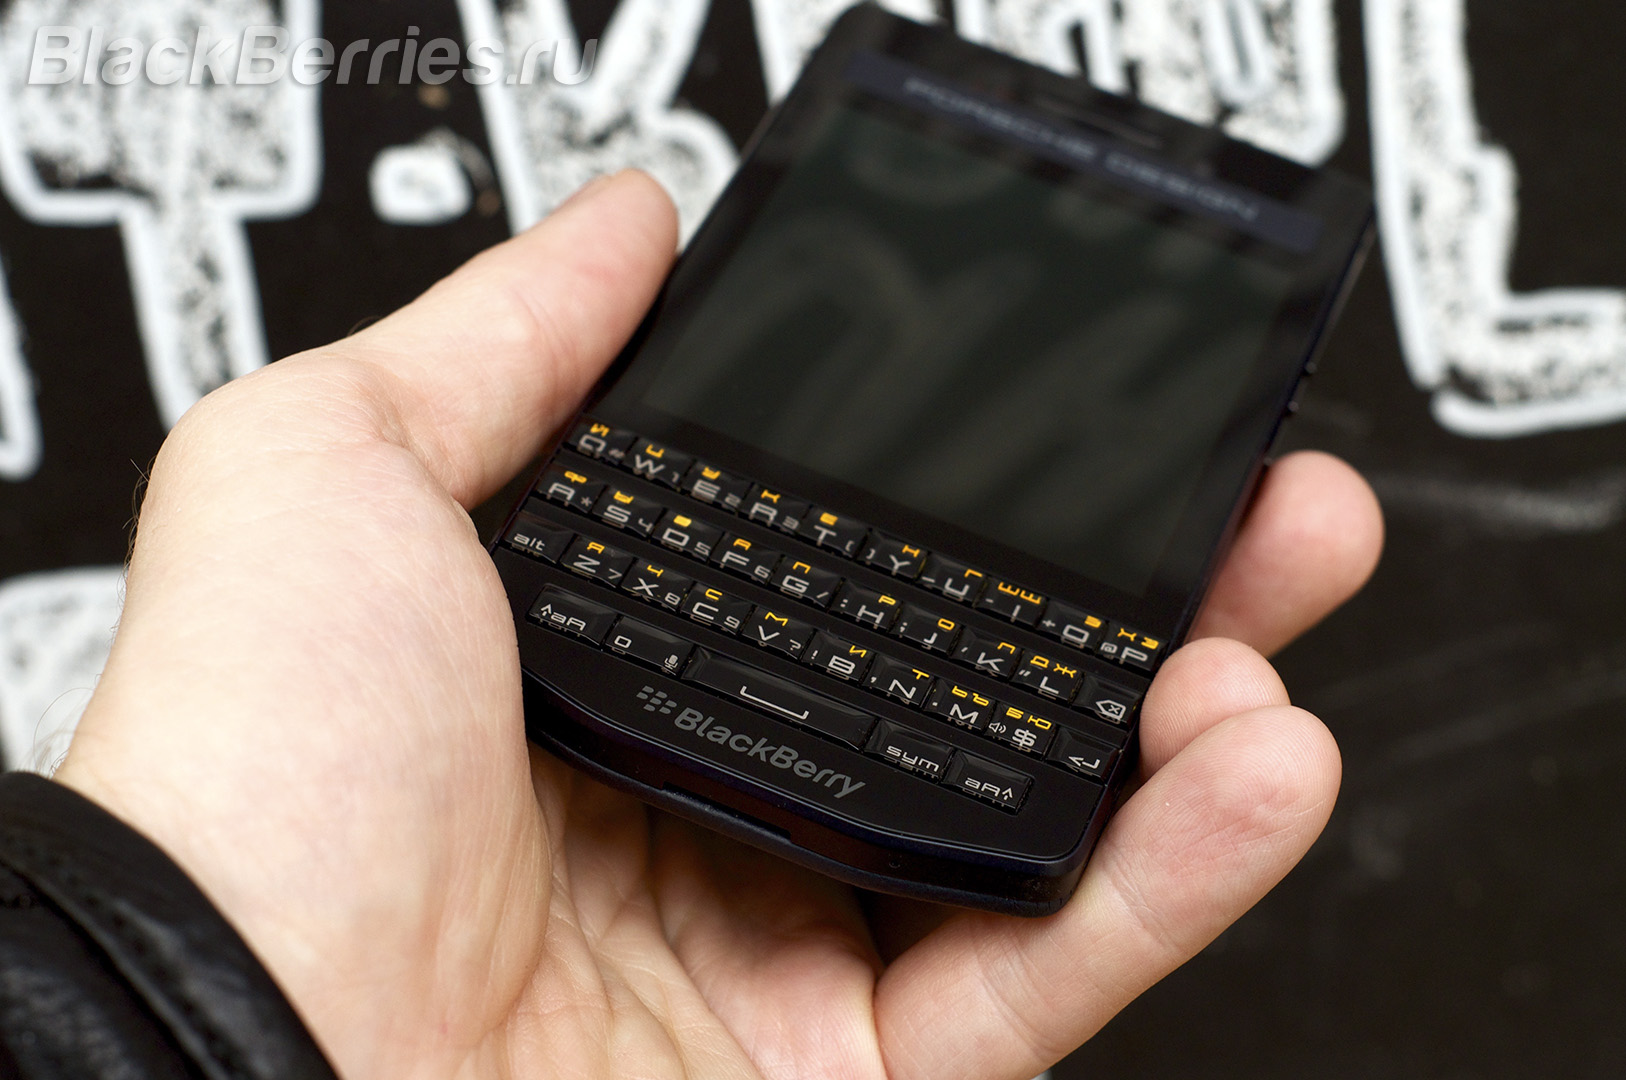 BlackBerry-P9983-Graphite-RUS-6